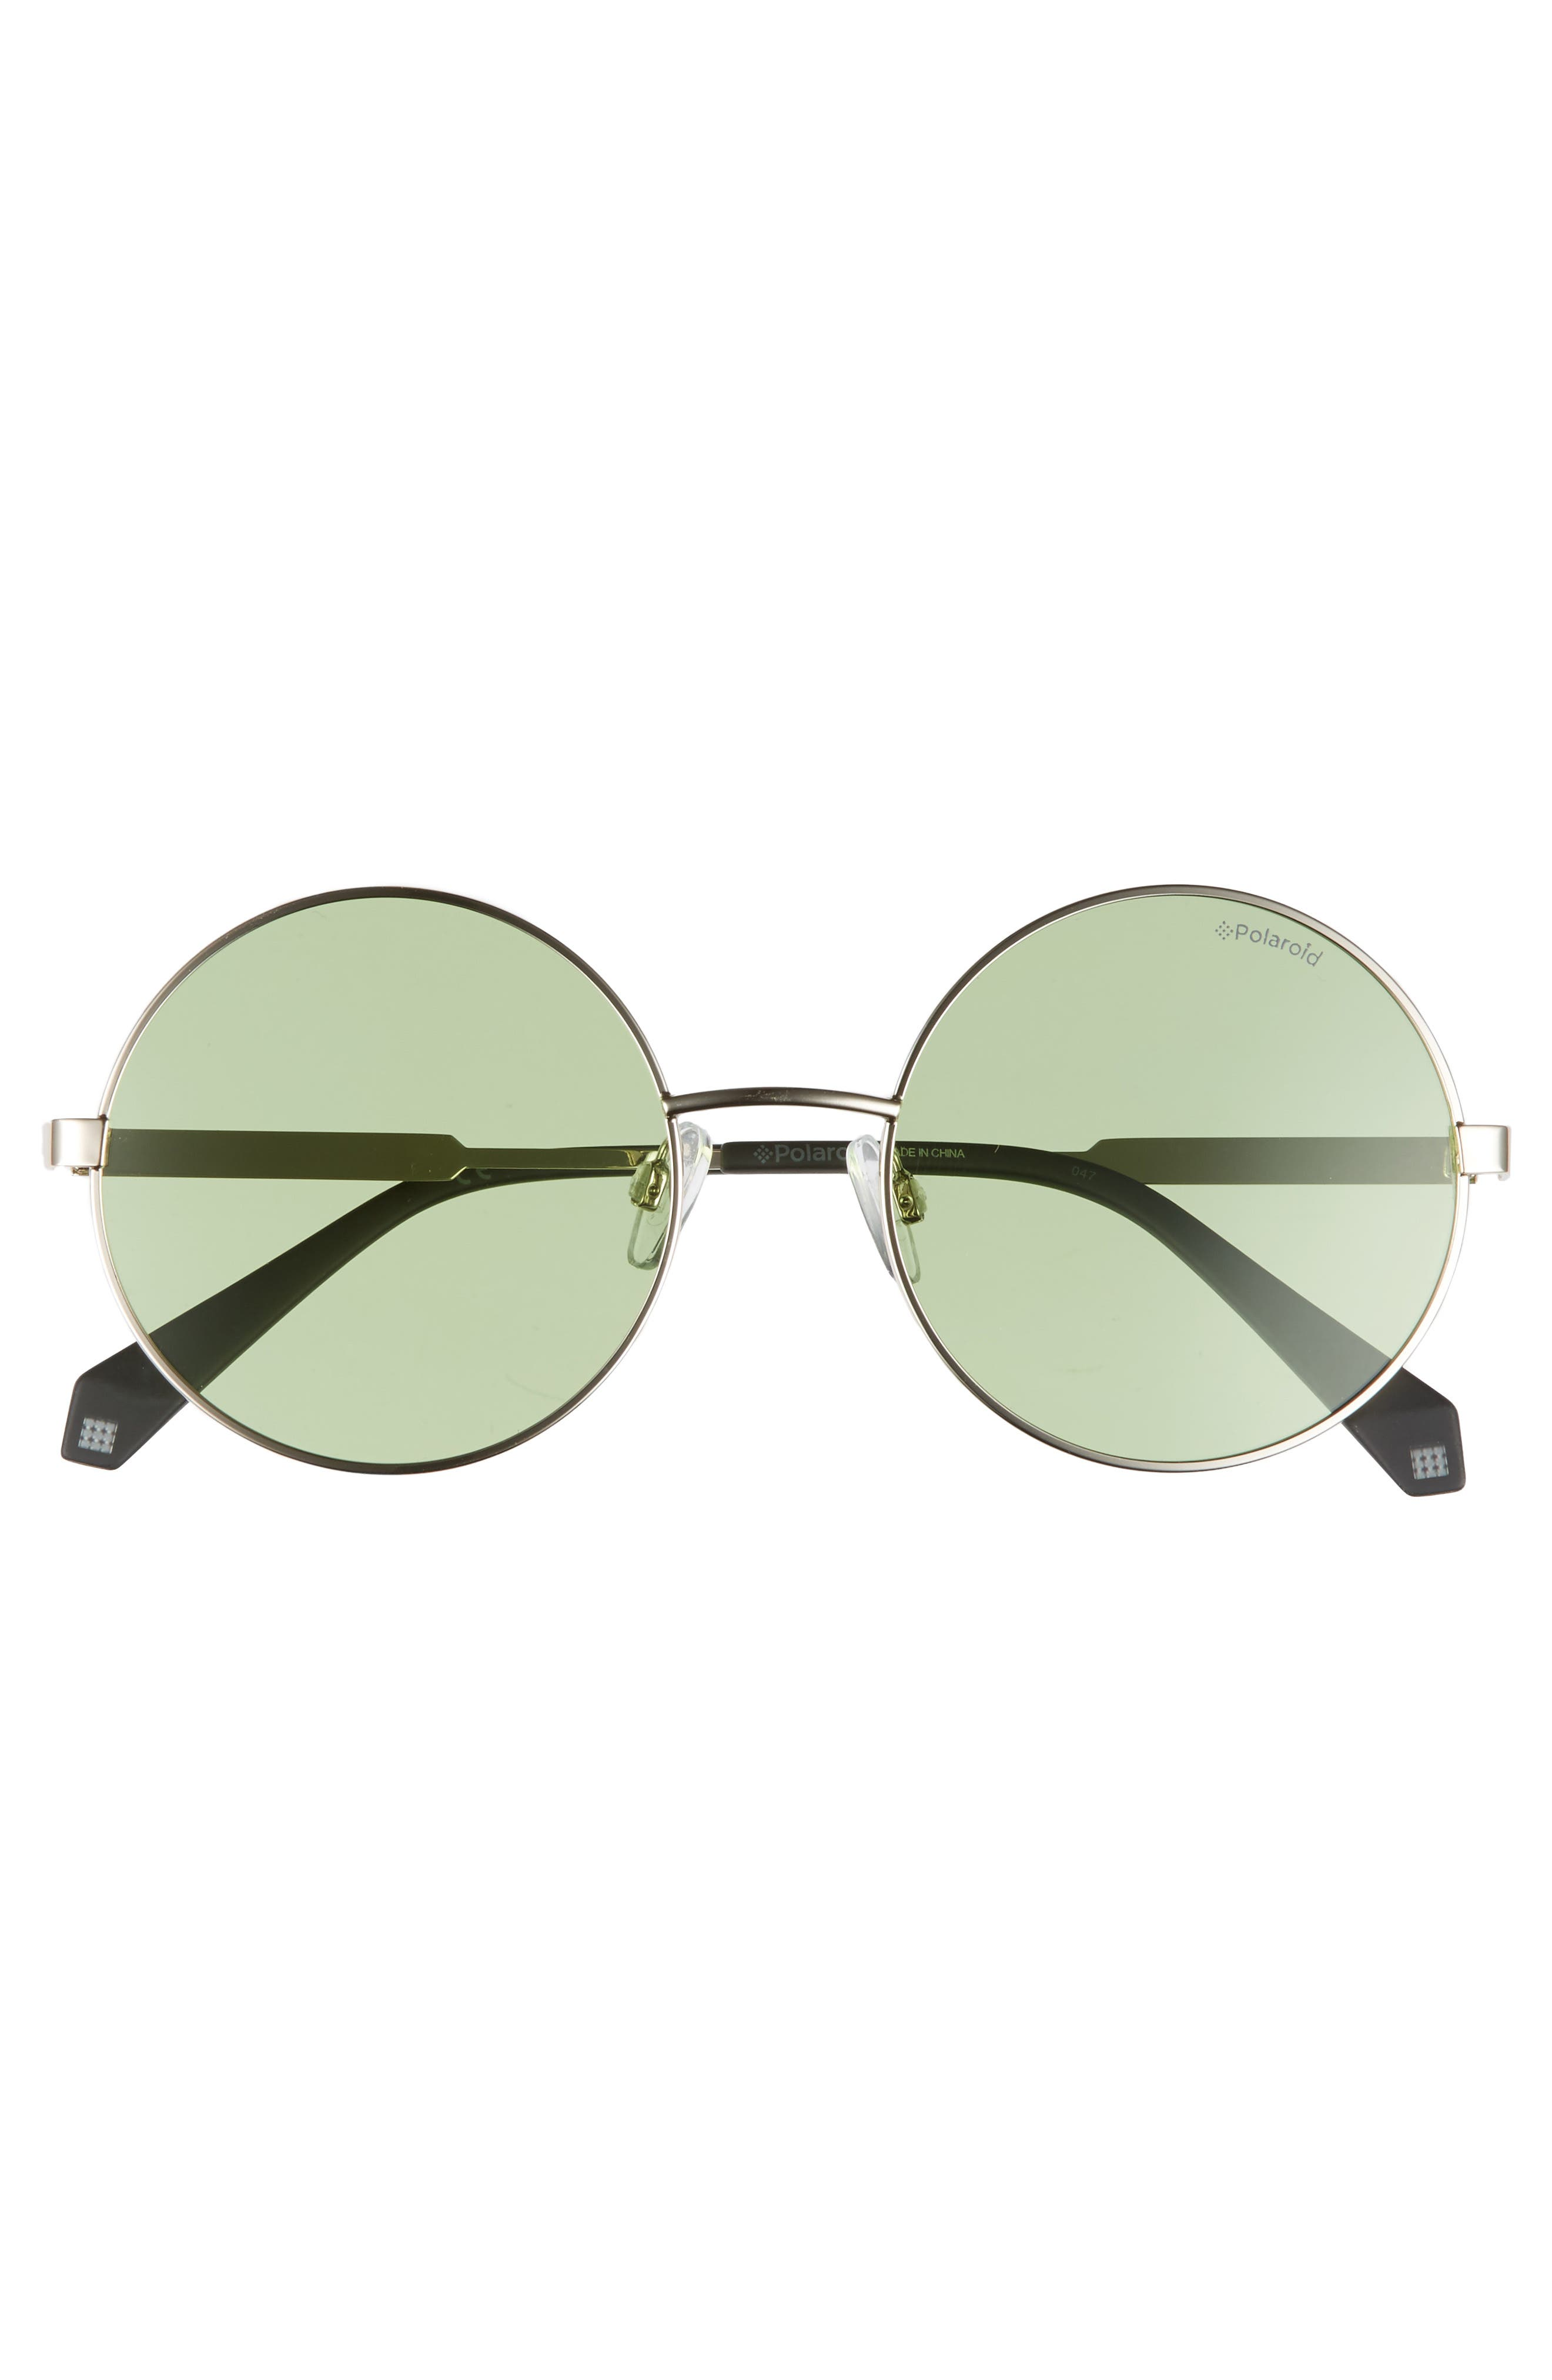 55mm Polarized Round Sunglasses,                             Alternate thumbnail 3, color,                             300